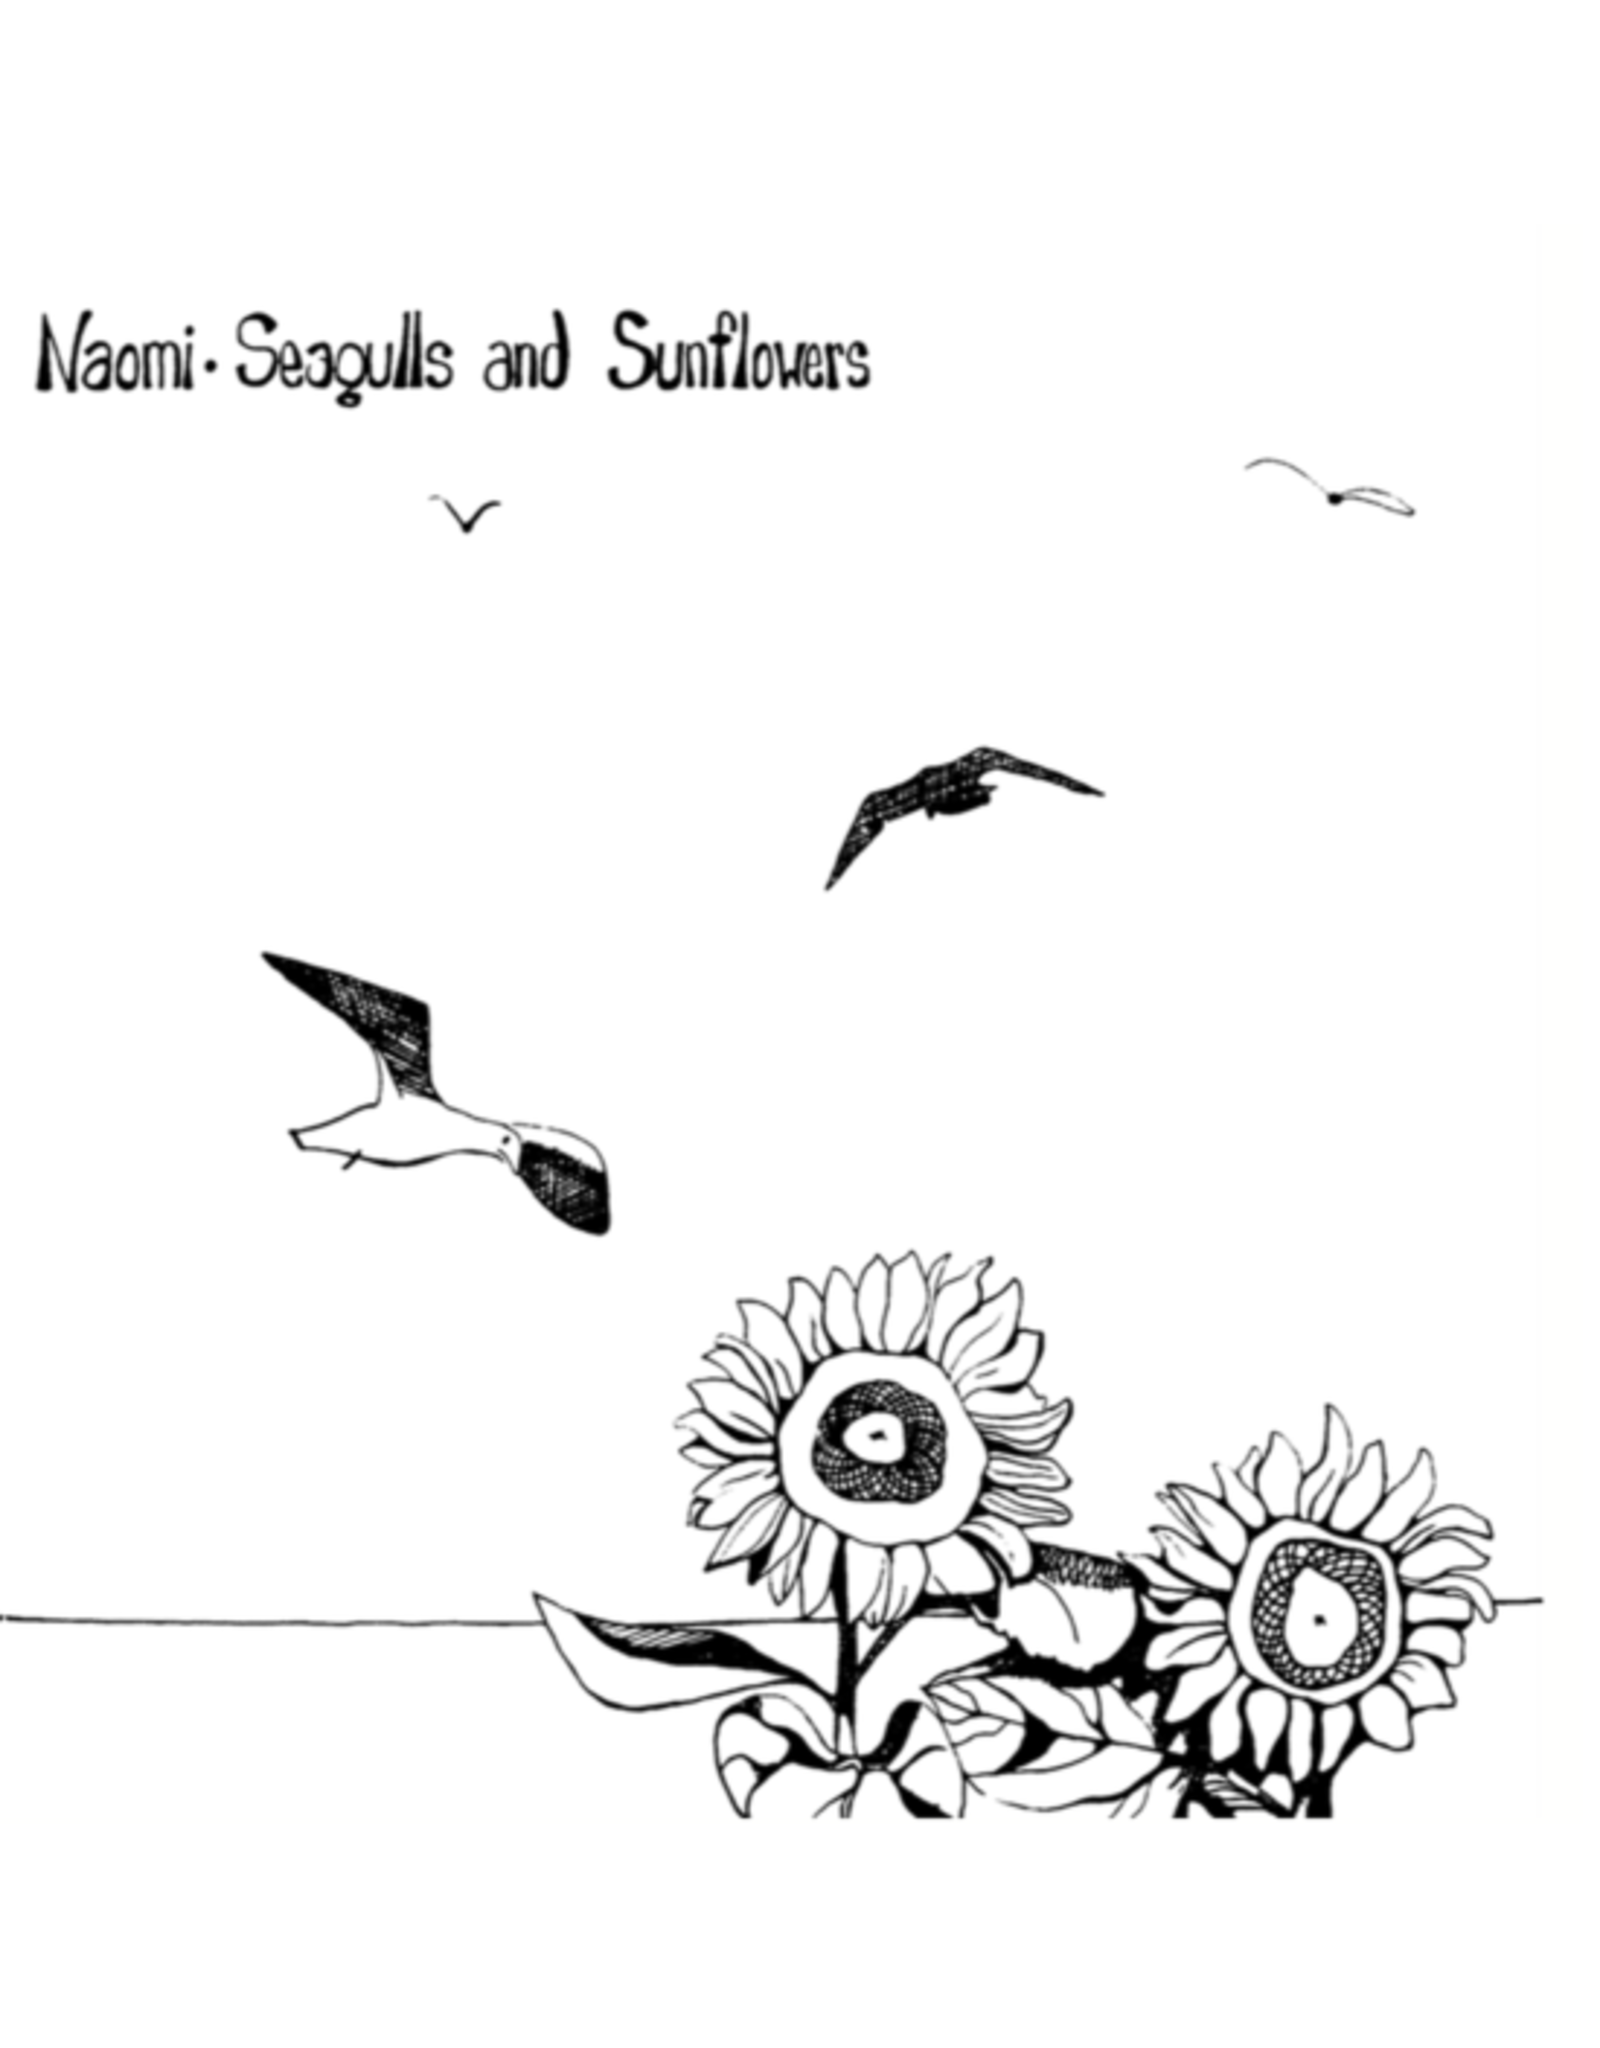 Mapache Lewis, Naomi: Seagulls and Sunflowers LP